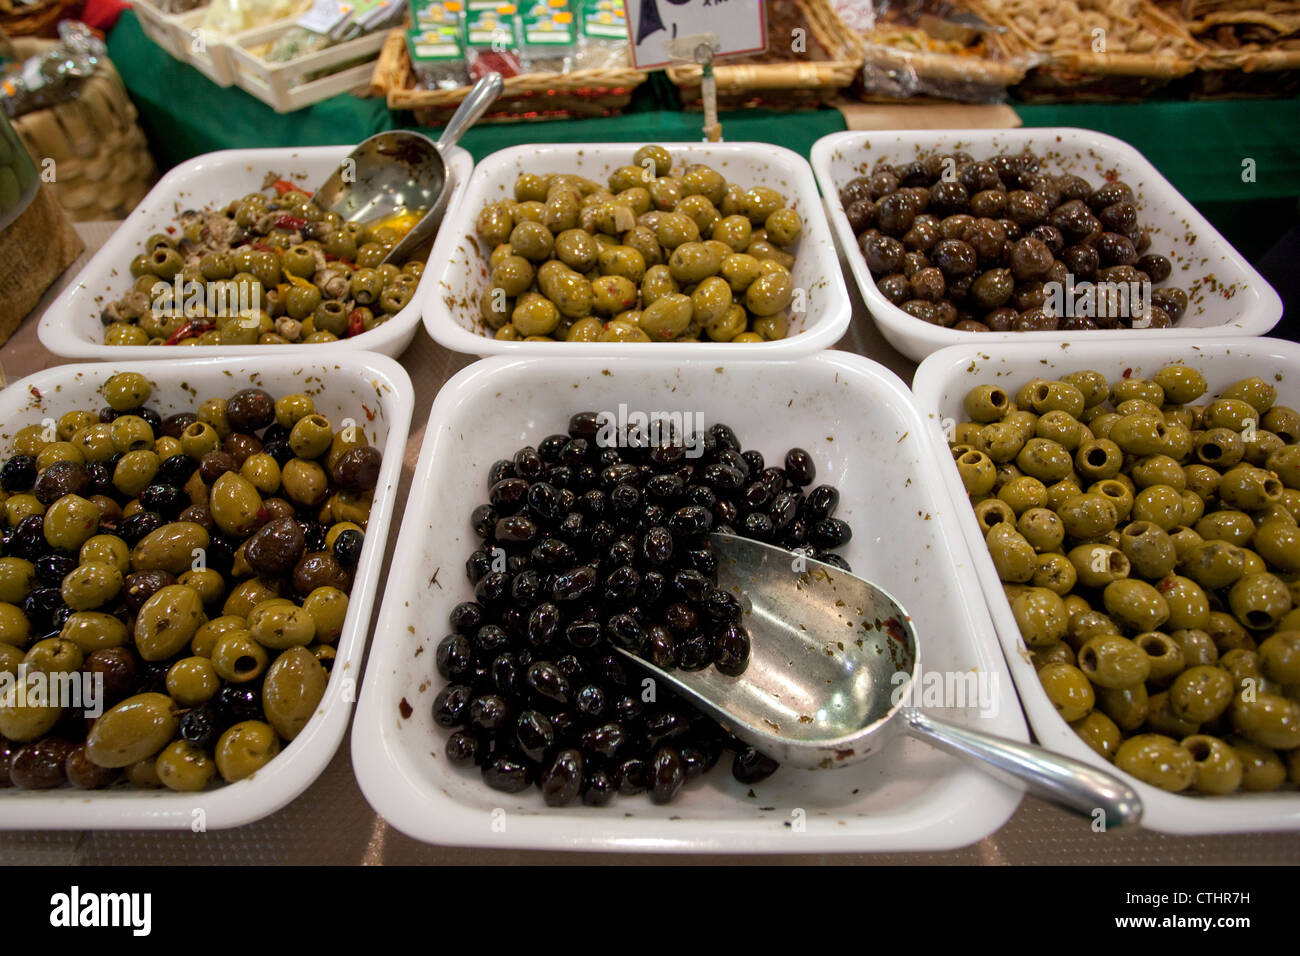 Olives on sale in Mercato Centrale, Florence, Italy - Stock Image